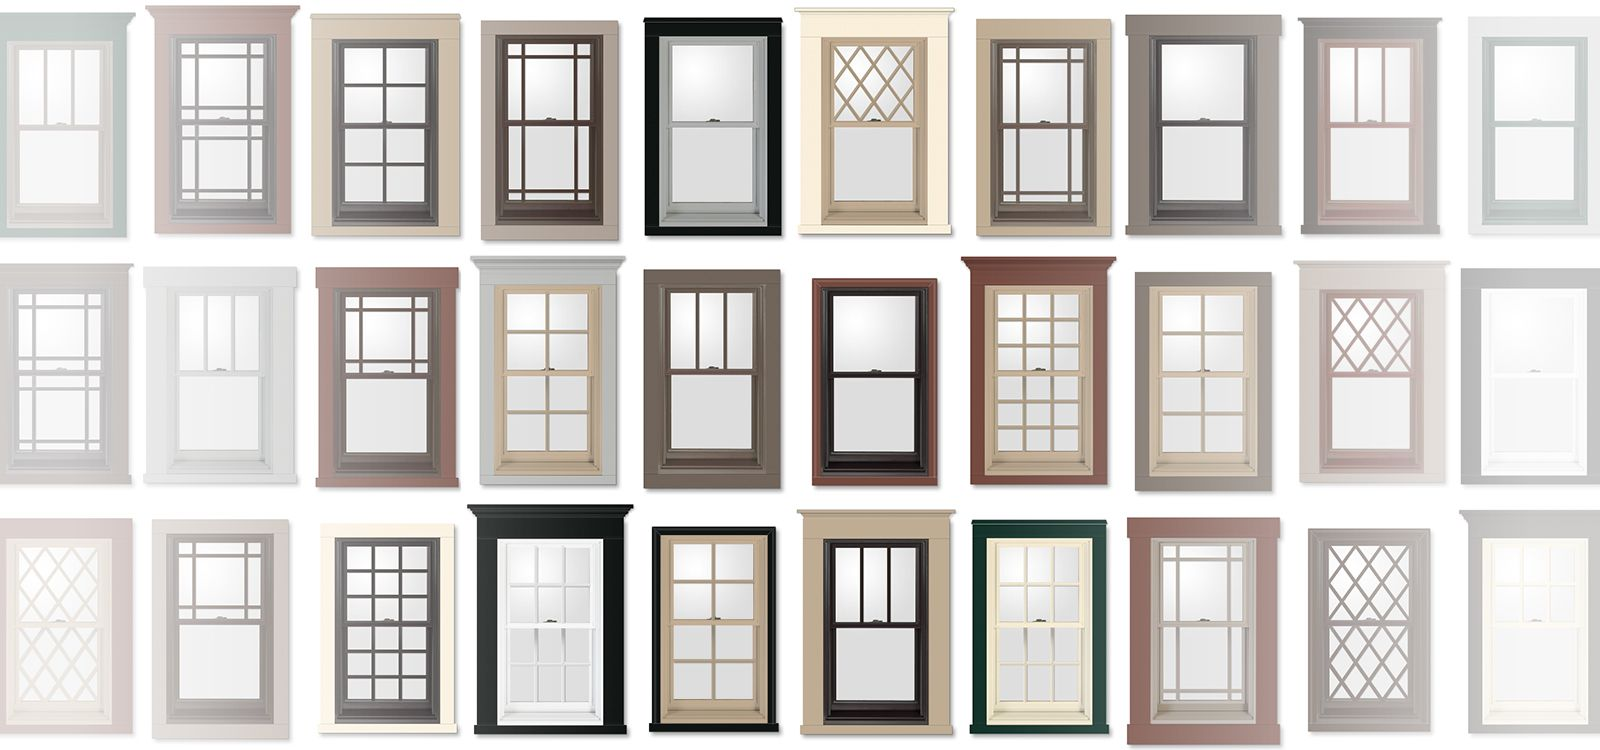 Andersen Windows And Patio Doors 1 In Quality Used Most By Residential Builders Contractors Description From Andersenhomedepot